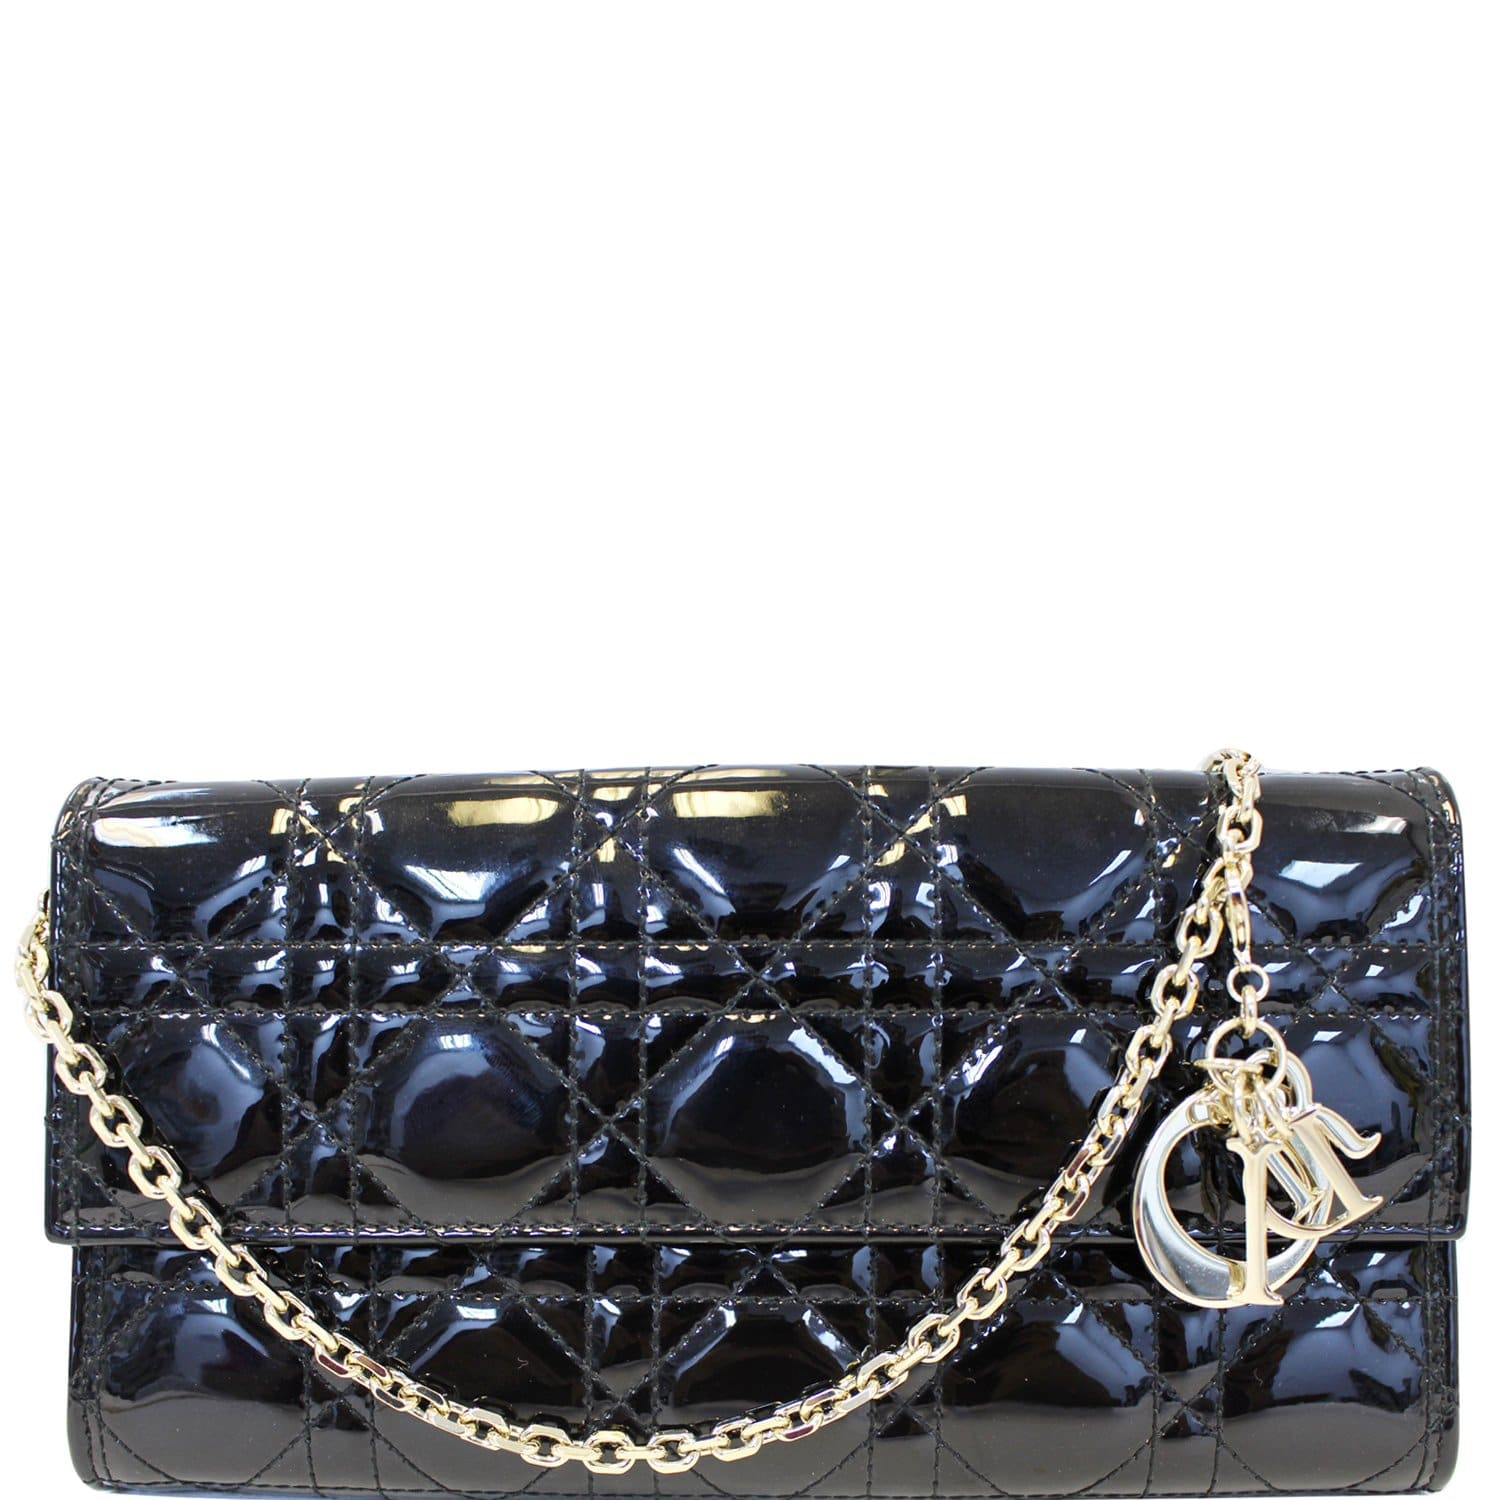 brand new 575ad d43e8 CHRISTIAN DIOR Lady Dior Croisiere Cannage Lambskin Chain Wallet Black